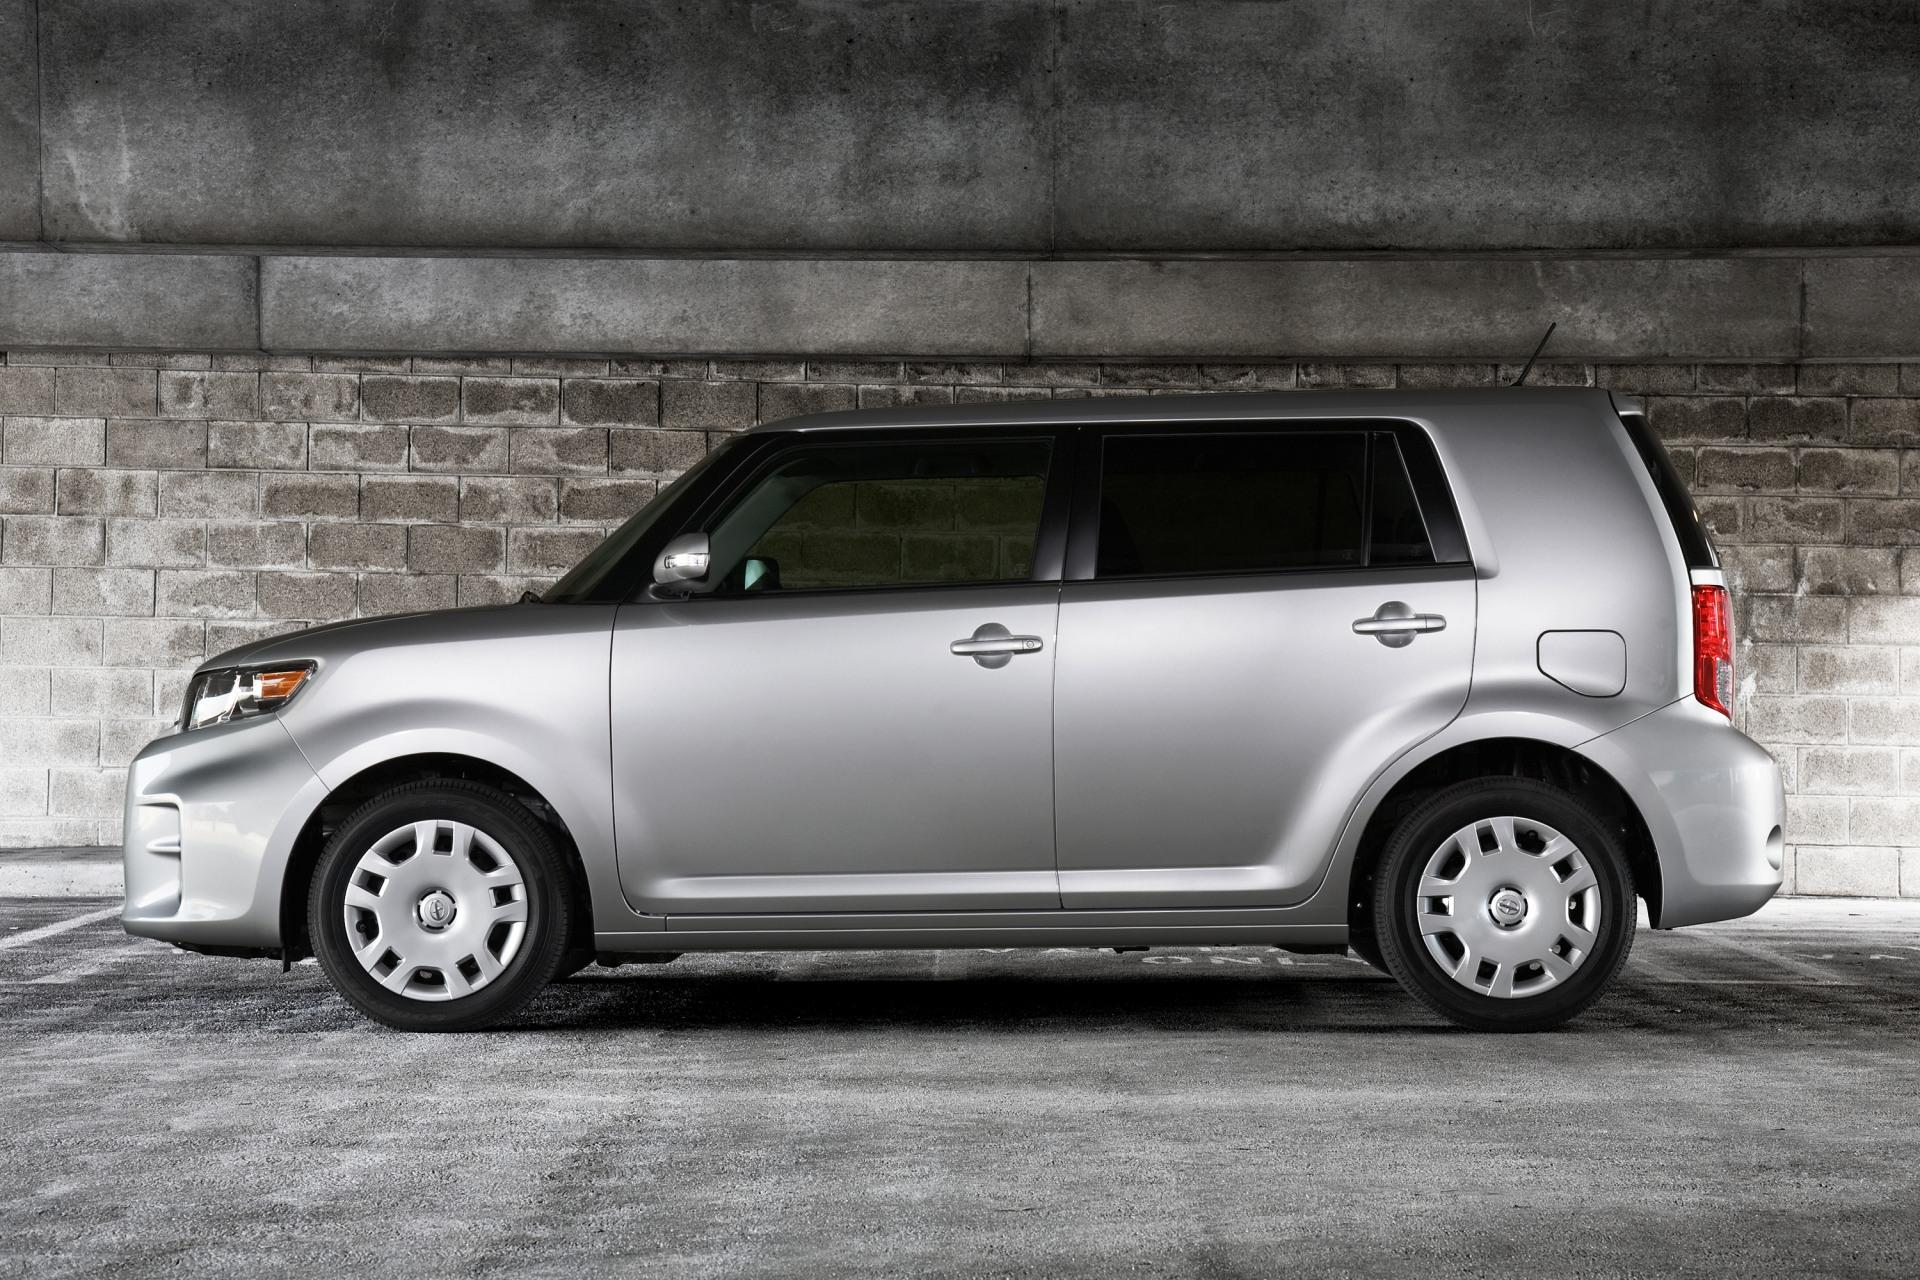 2011 scion xb technical specifications and data engine dimensions and mechanical details. Black Bedroom Furniture Sets. Home Design Ideas